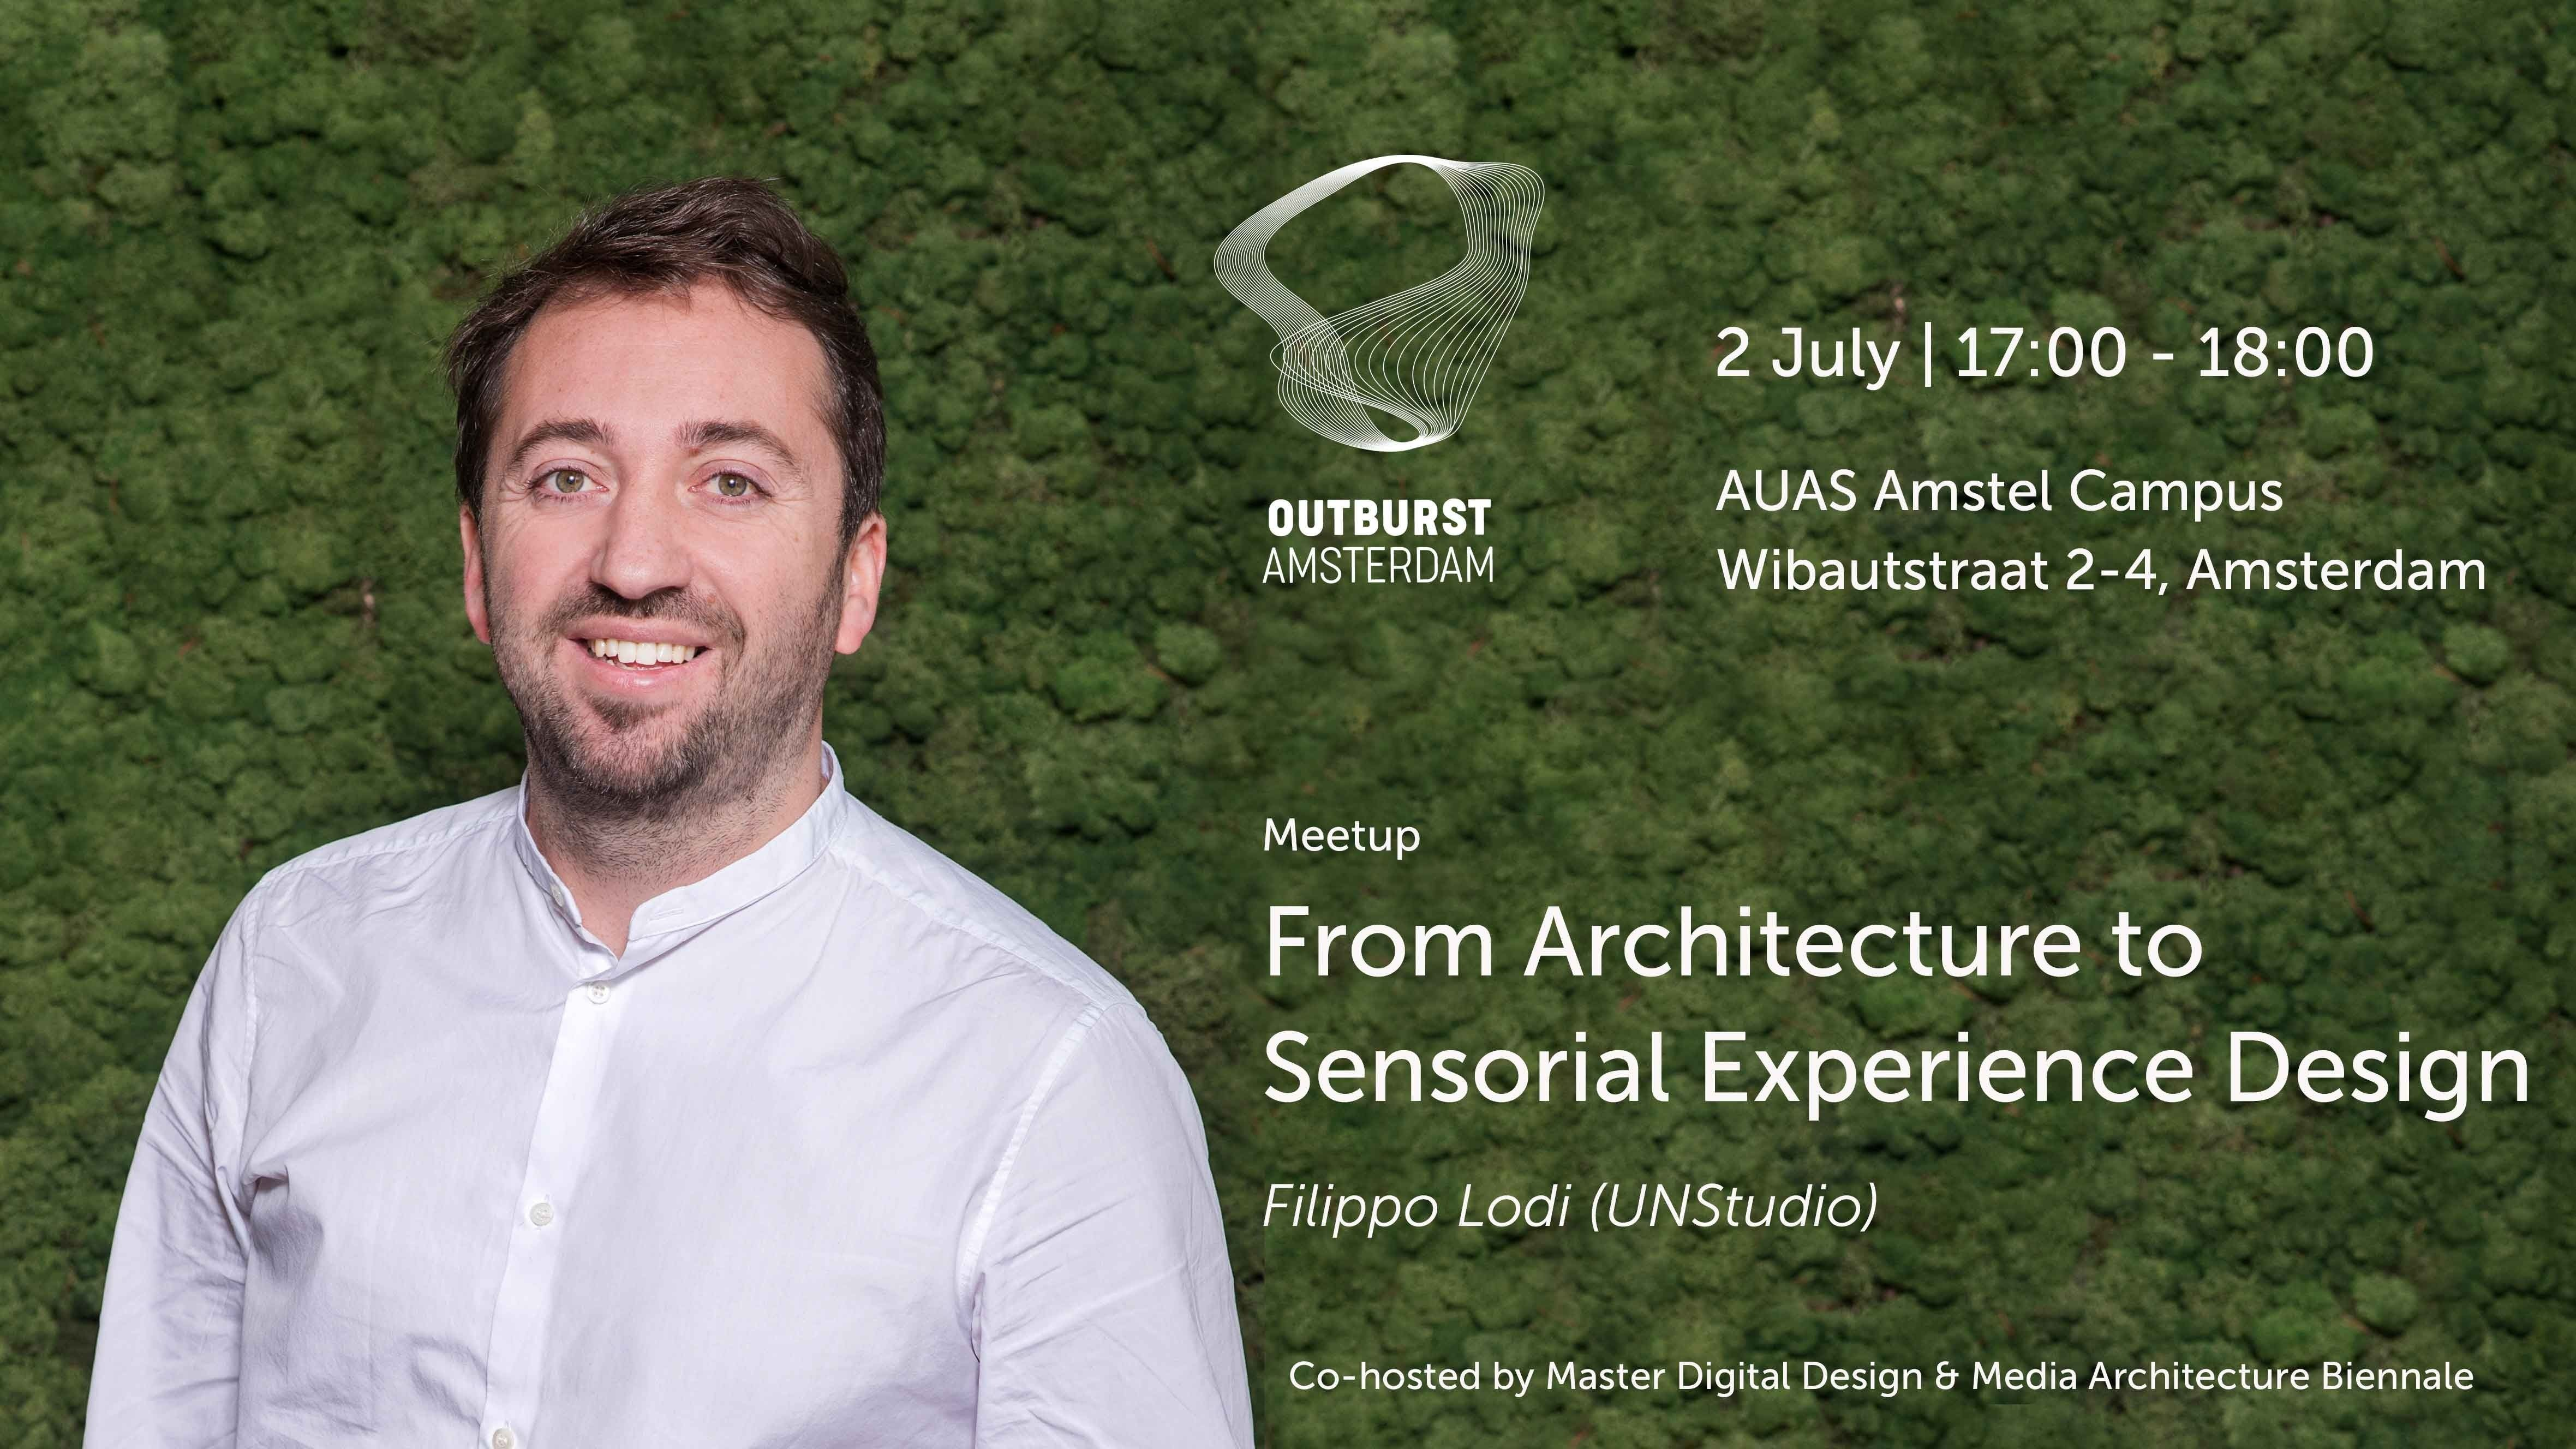 MAB & MDD Meetup with Filippo Lodi (UNStudio) | From Architecture to Sensorial Experience Design